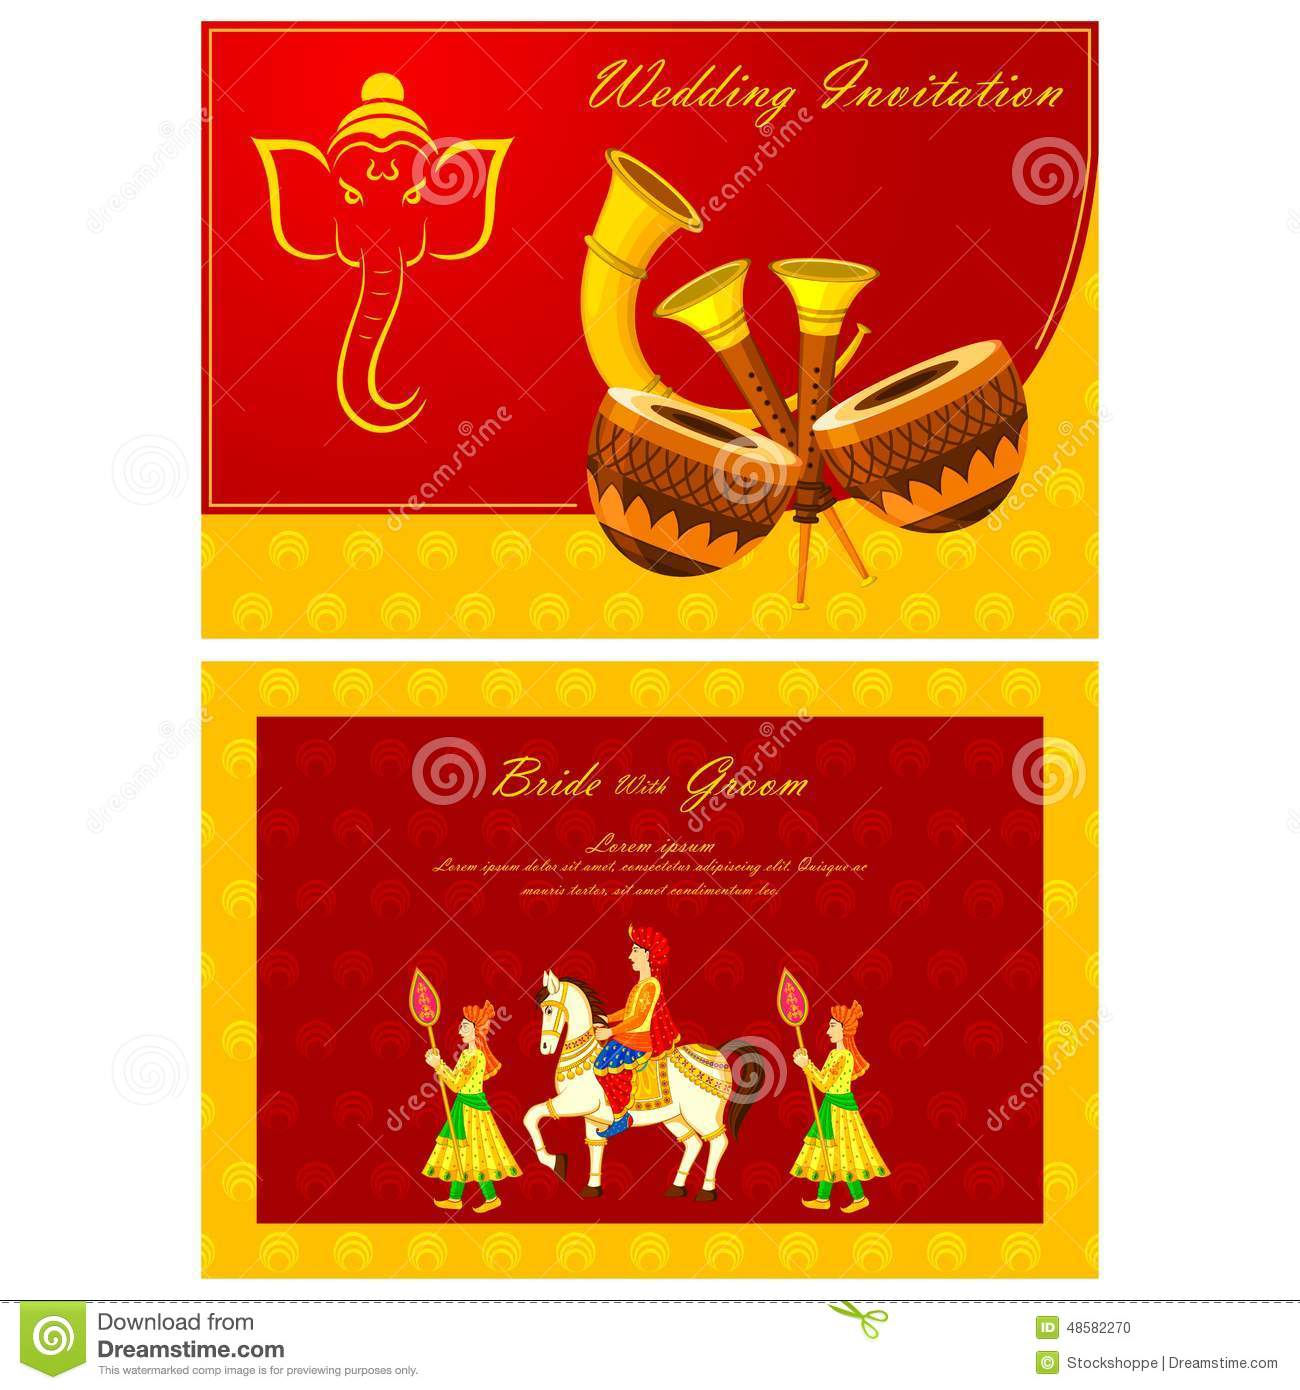 Indian Wedding Invitation Card Stock Vector - Illustration of ethnic ...